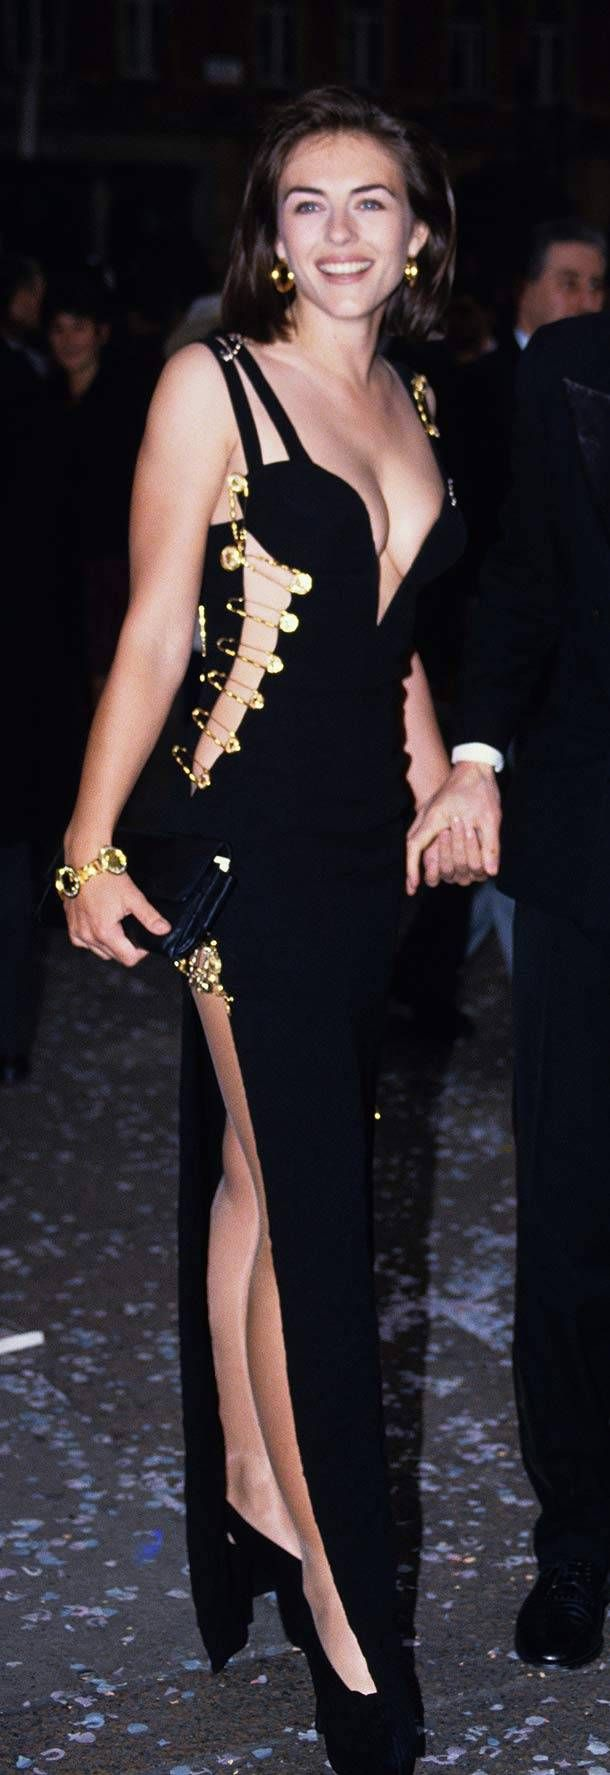 Elizabeth Hurley in Gianni Versace -- having make believe clothes pins holding your dress together is not a good look. tacky, tacky...